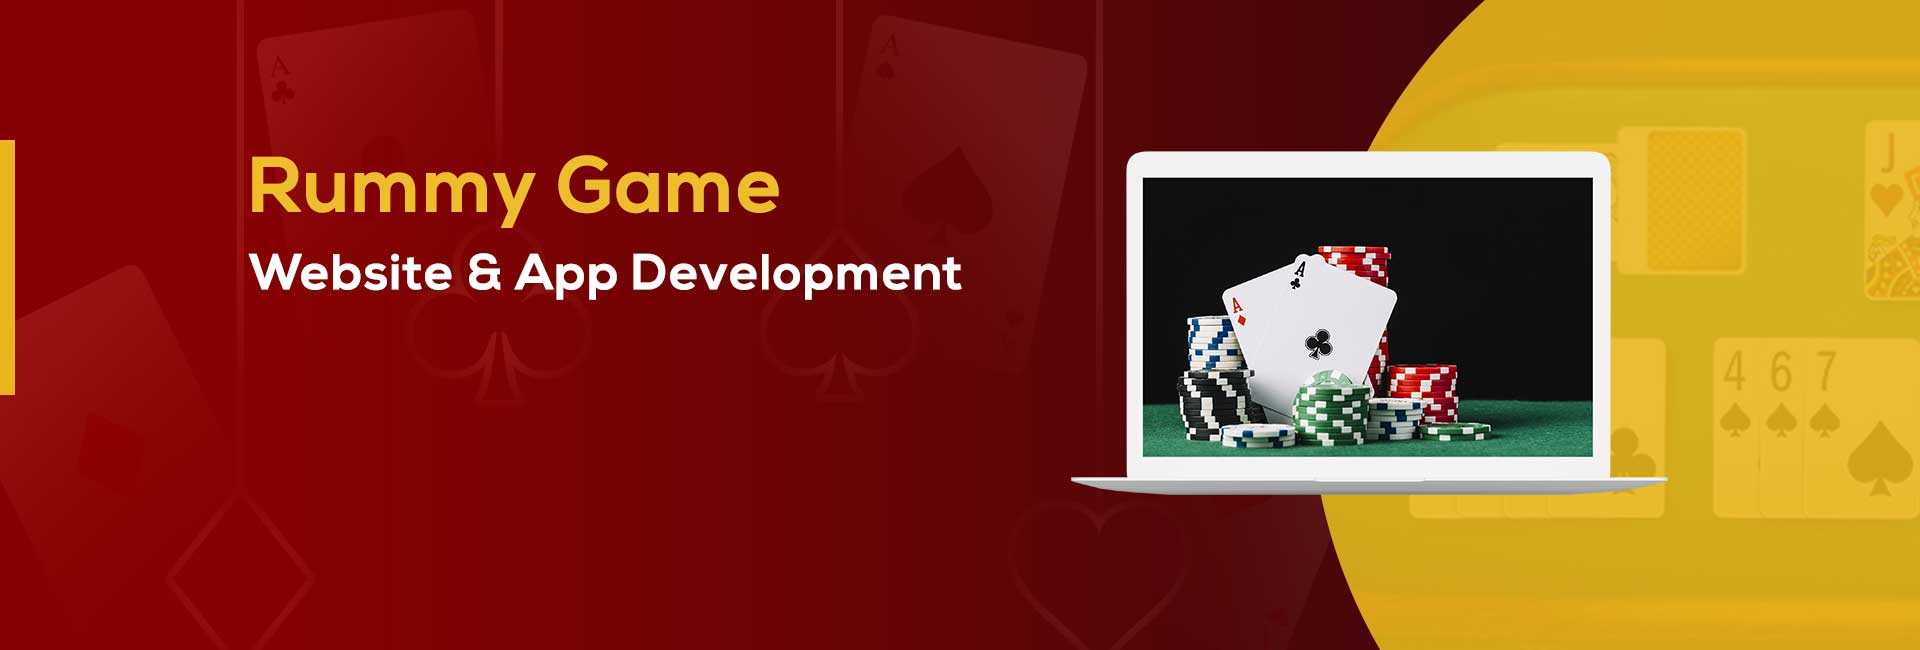 Rummy Game Software Development